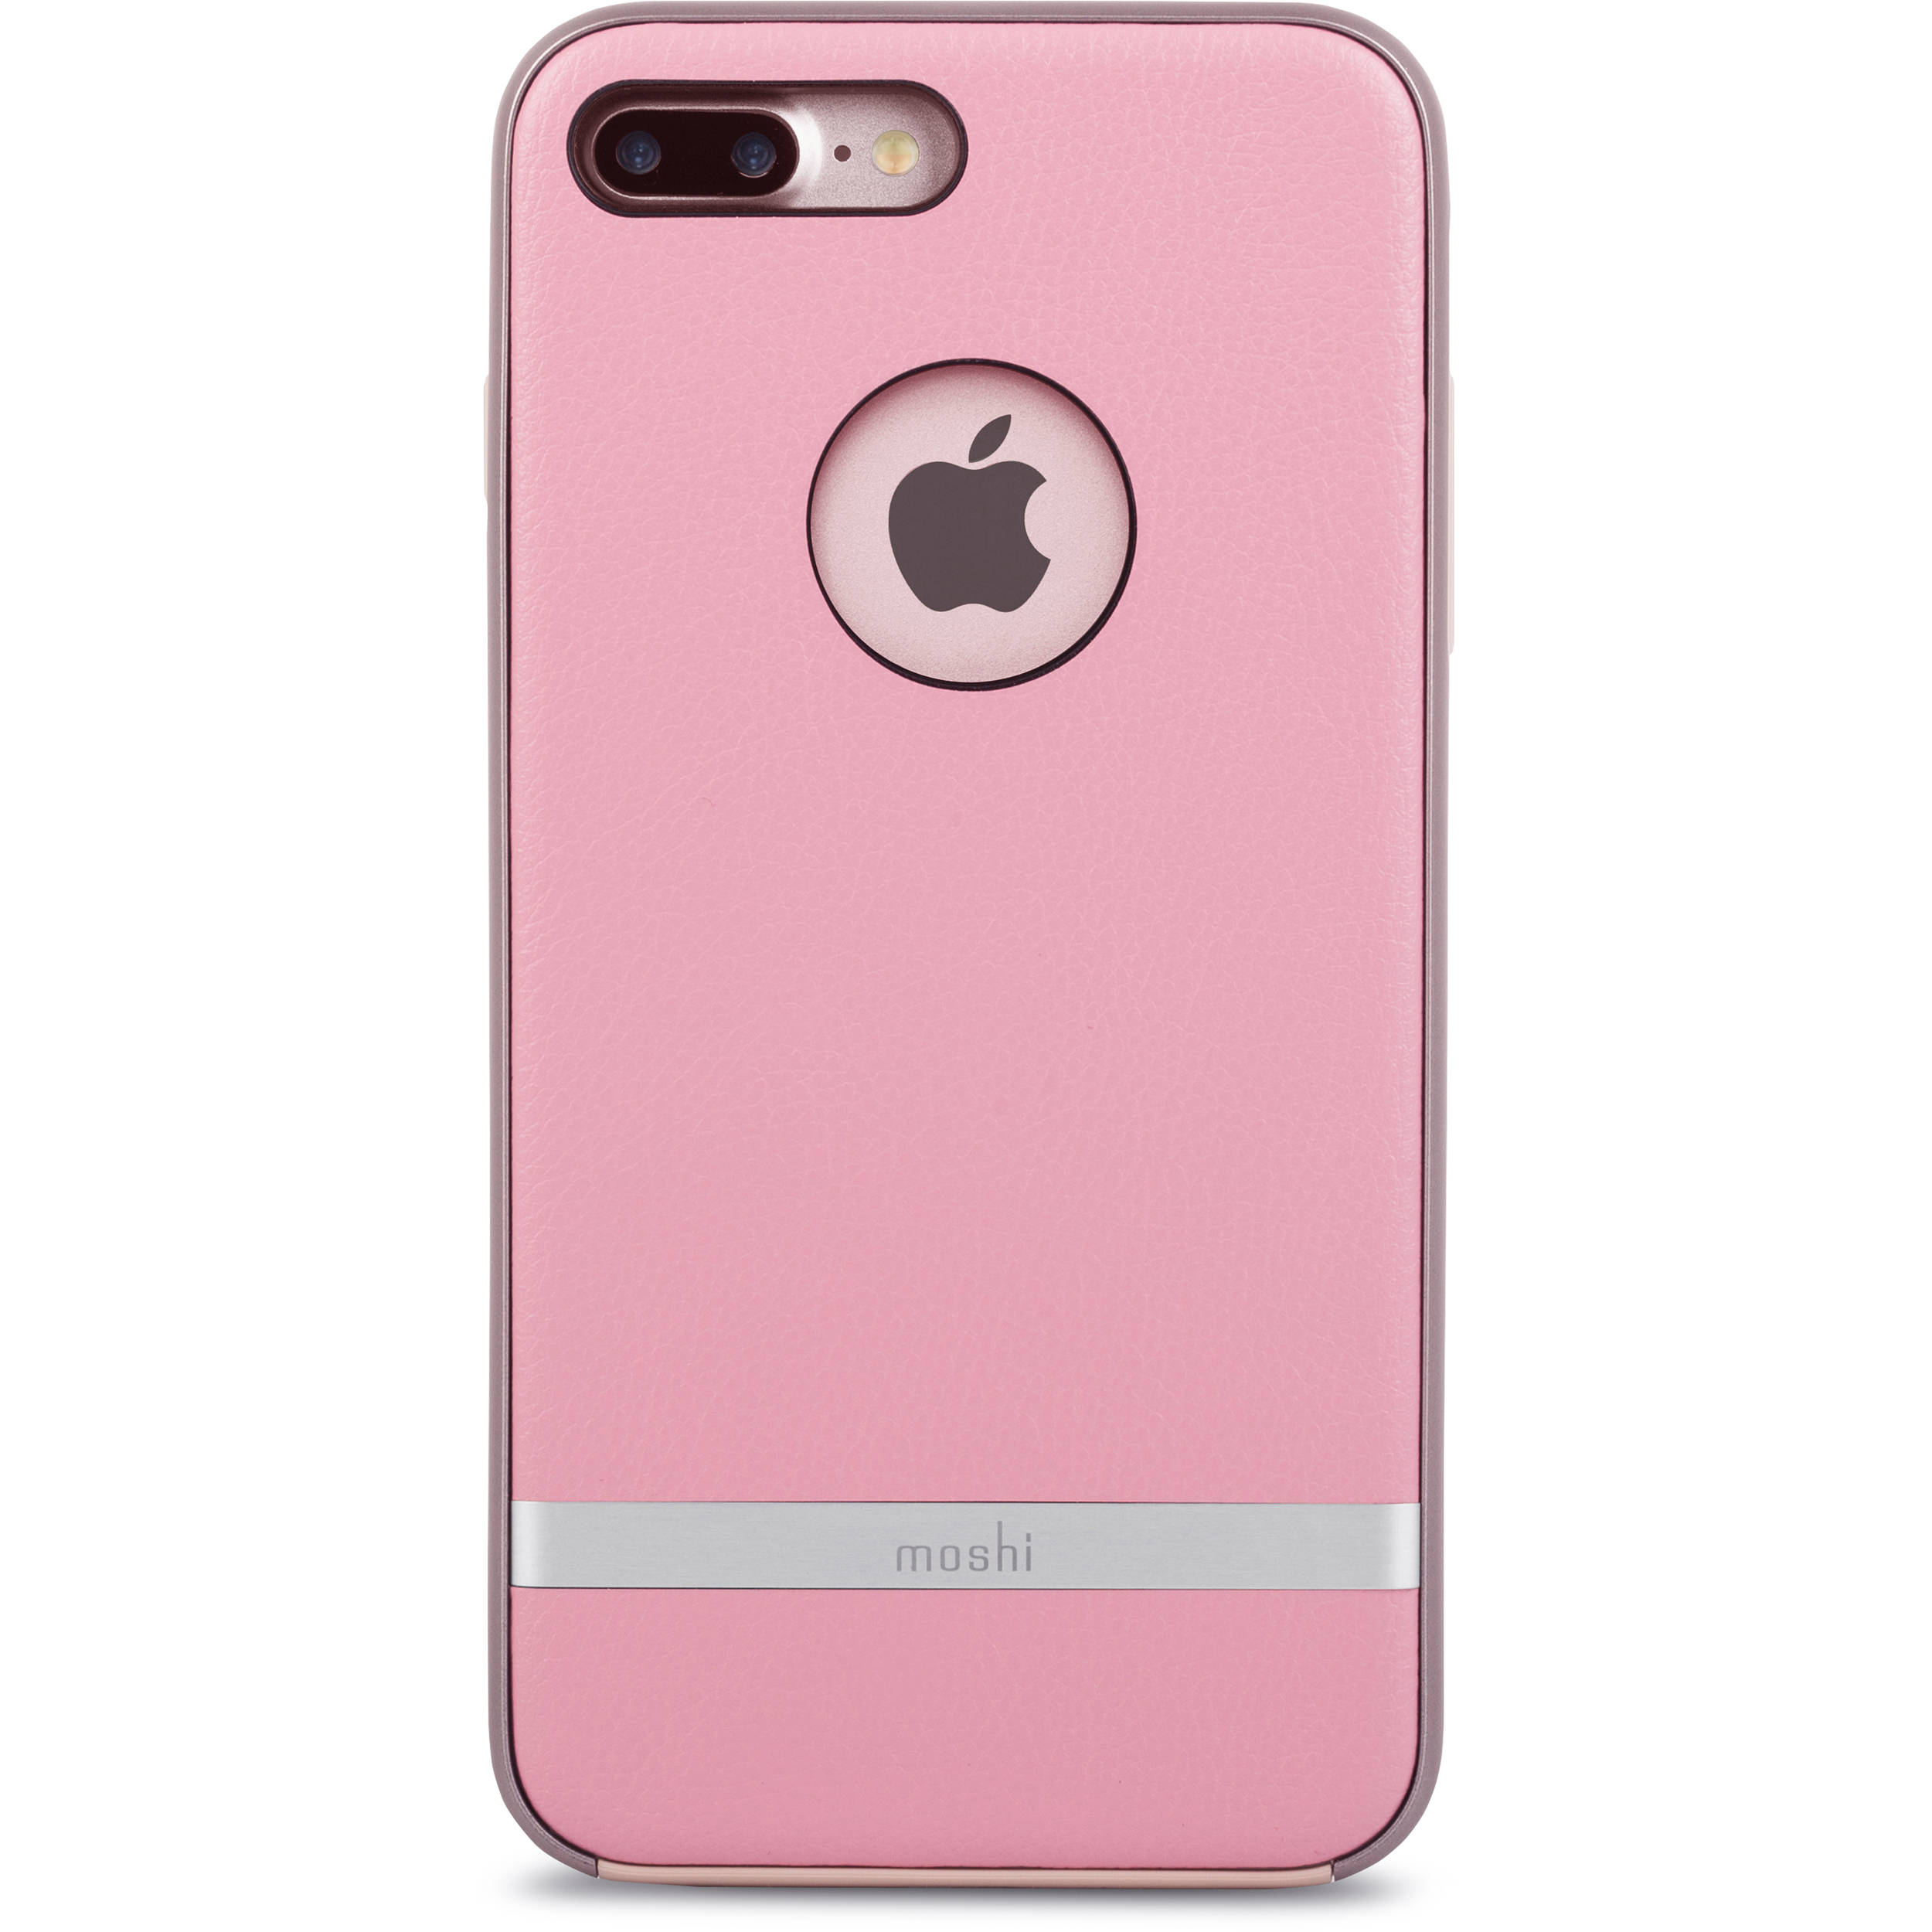 moshi napa case for iphone 7 plus pink 99mo090303 b h photo. Black Bedroom Furniture Sets. Home Design Ideas